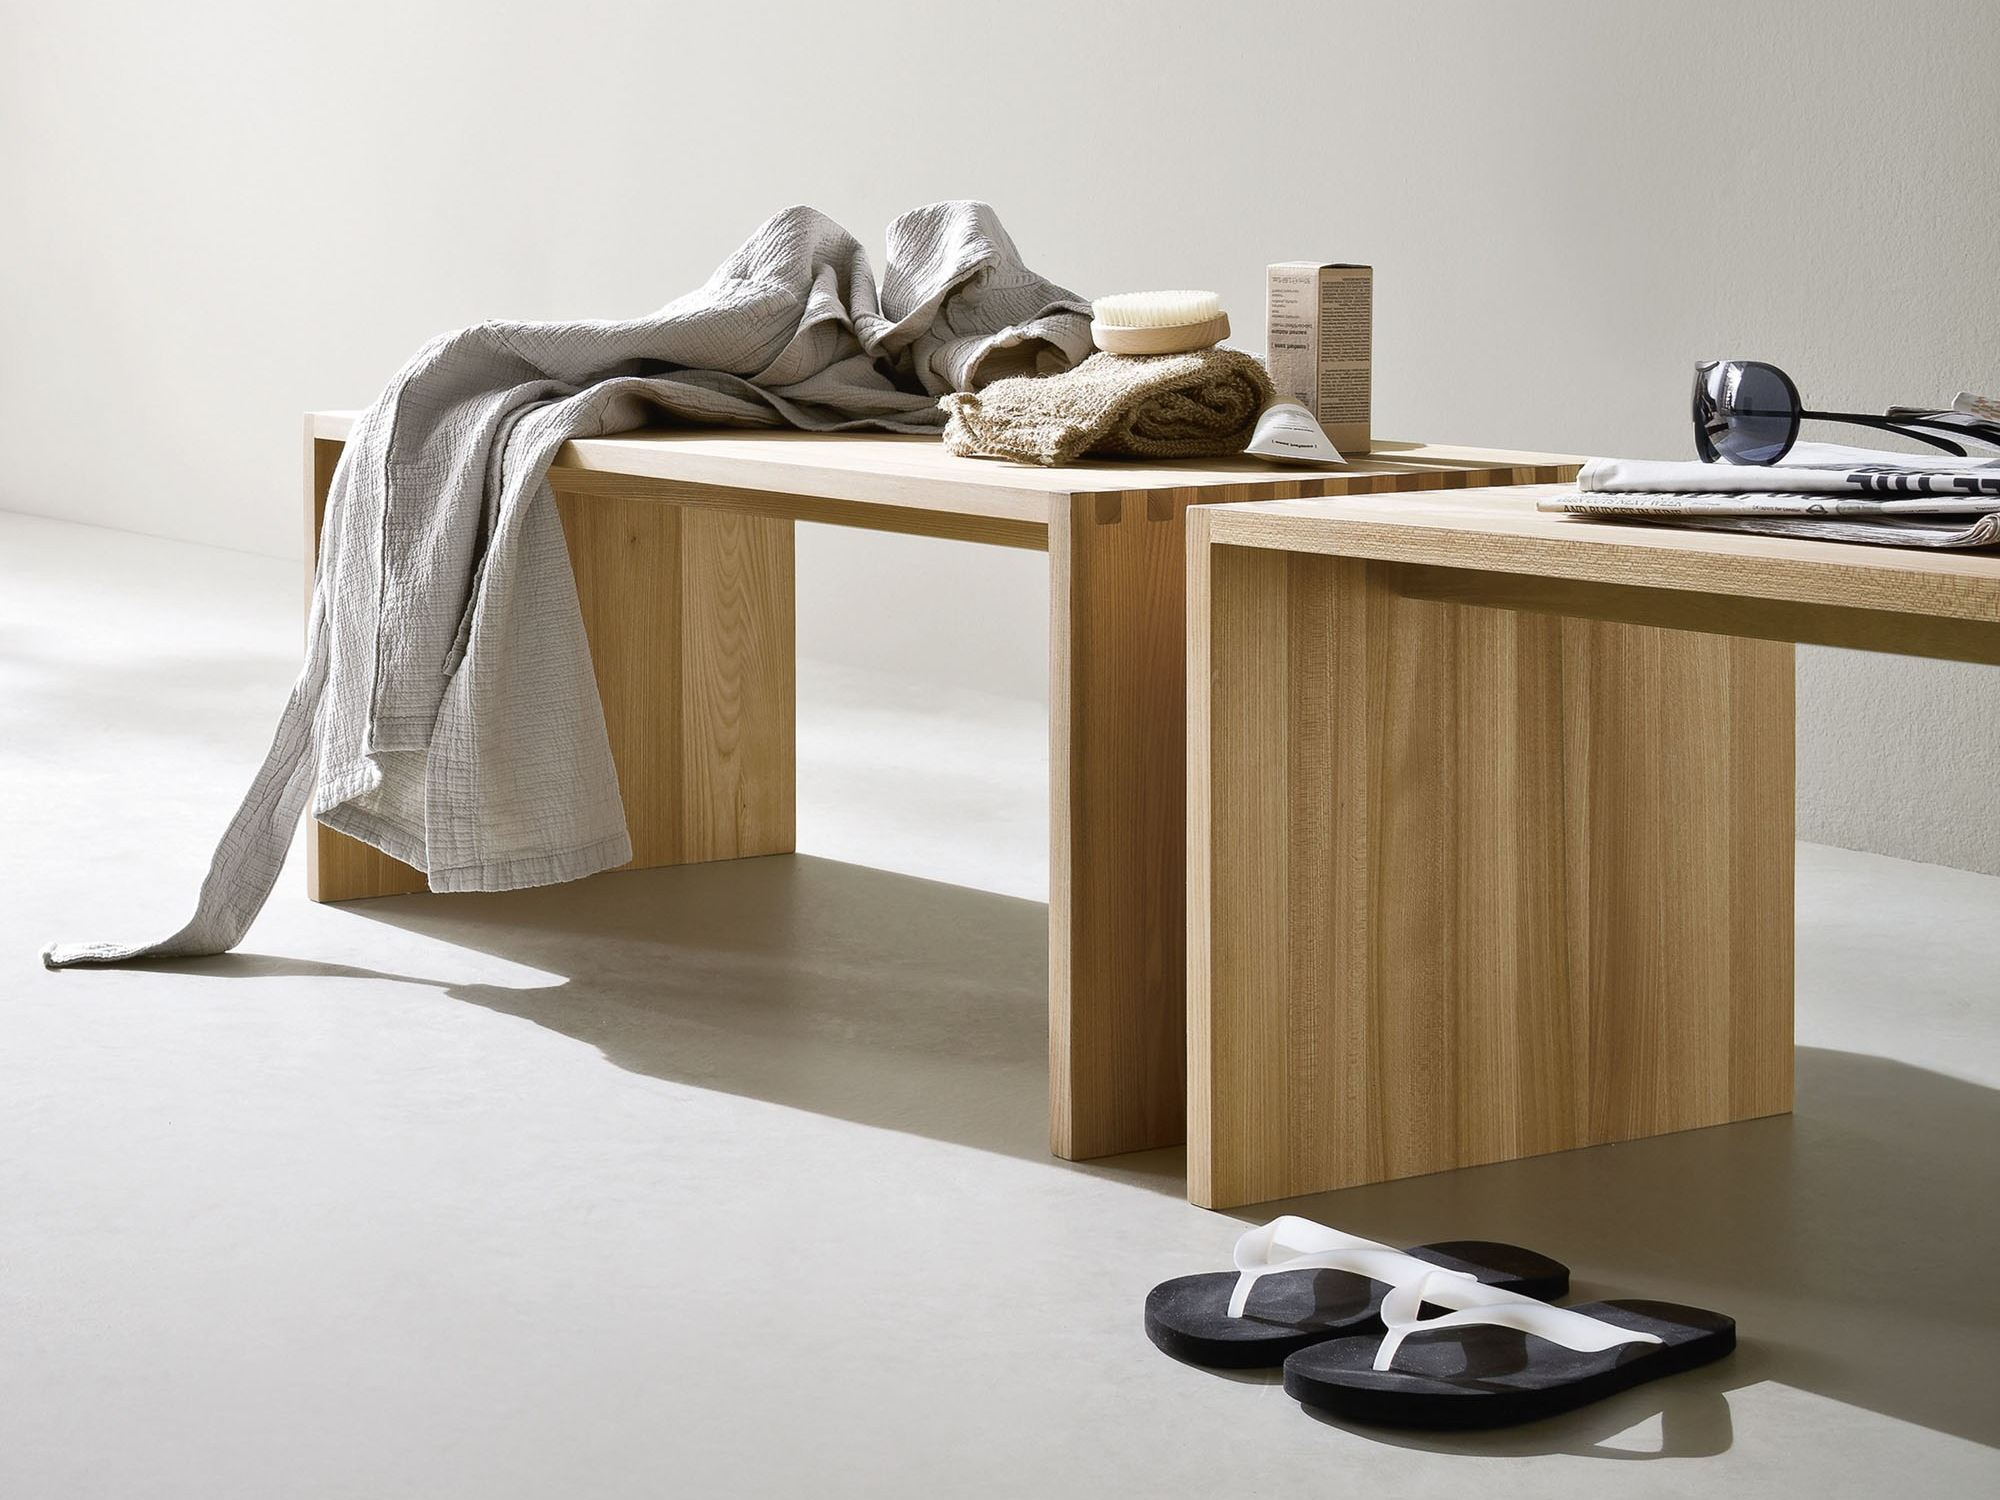 Fonte banc collection fonte by rexa design for Banc pour salle de bain